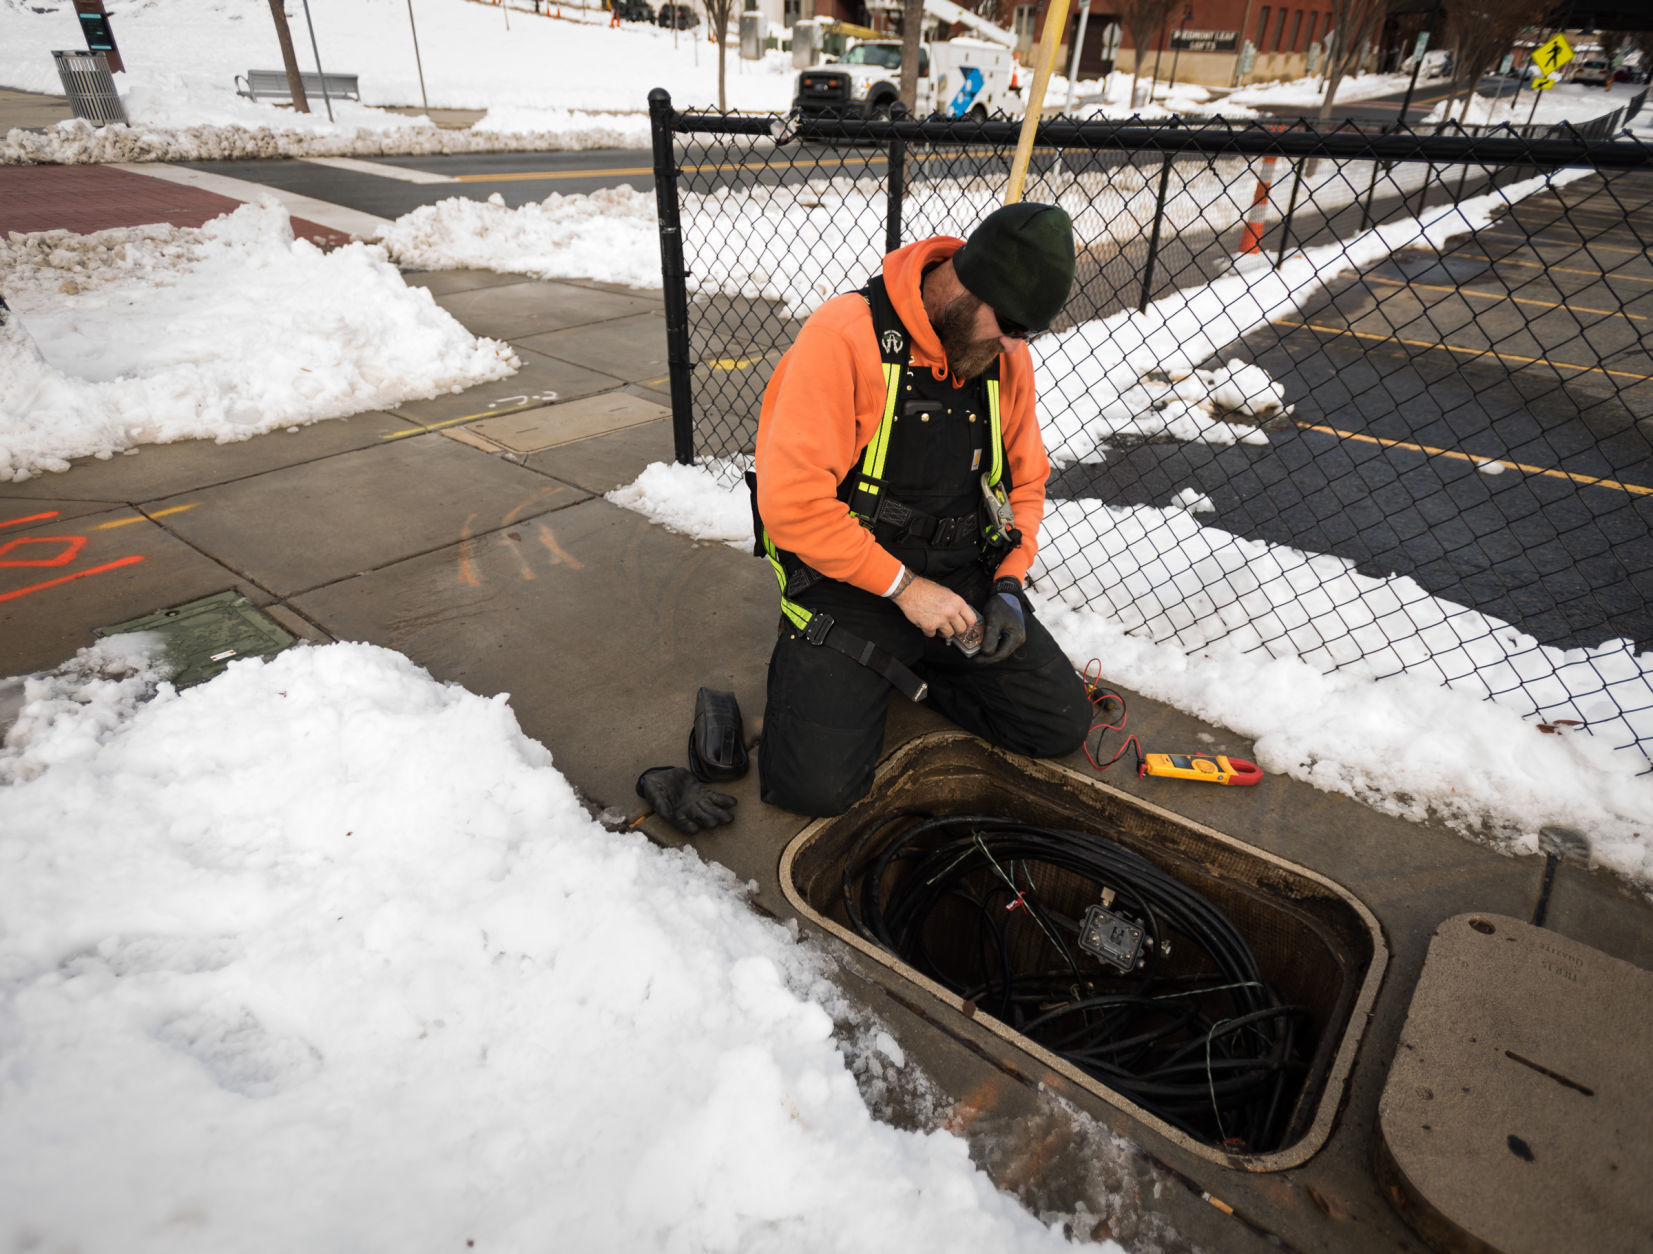 'We are in the business of staying prepared': First responders, hospital and shelter staffs work despite the winter storm. | Winston Salem Journal